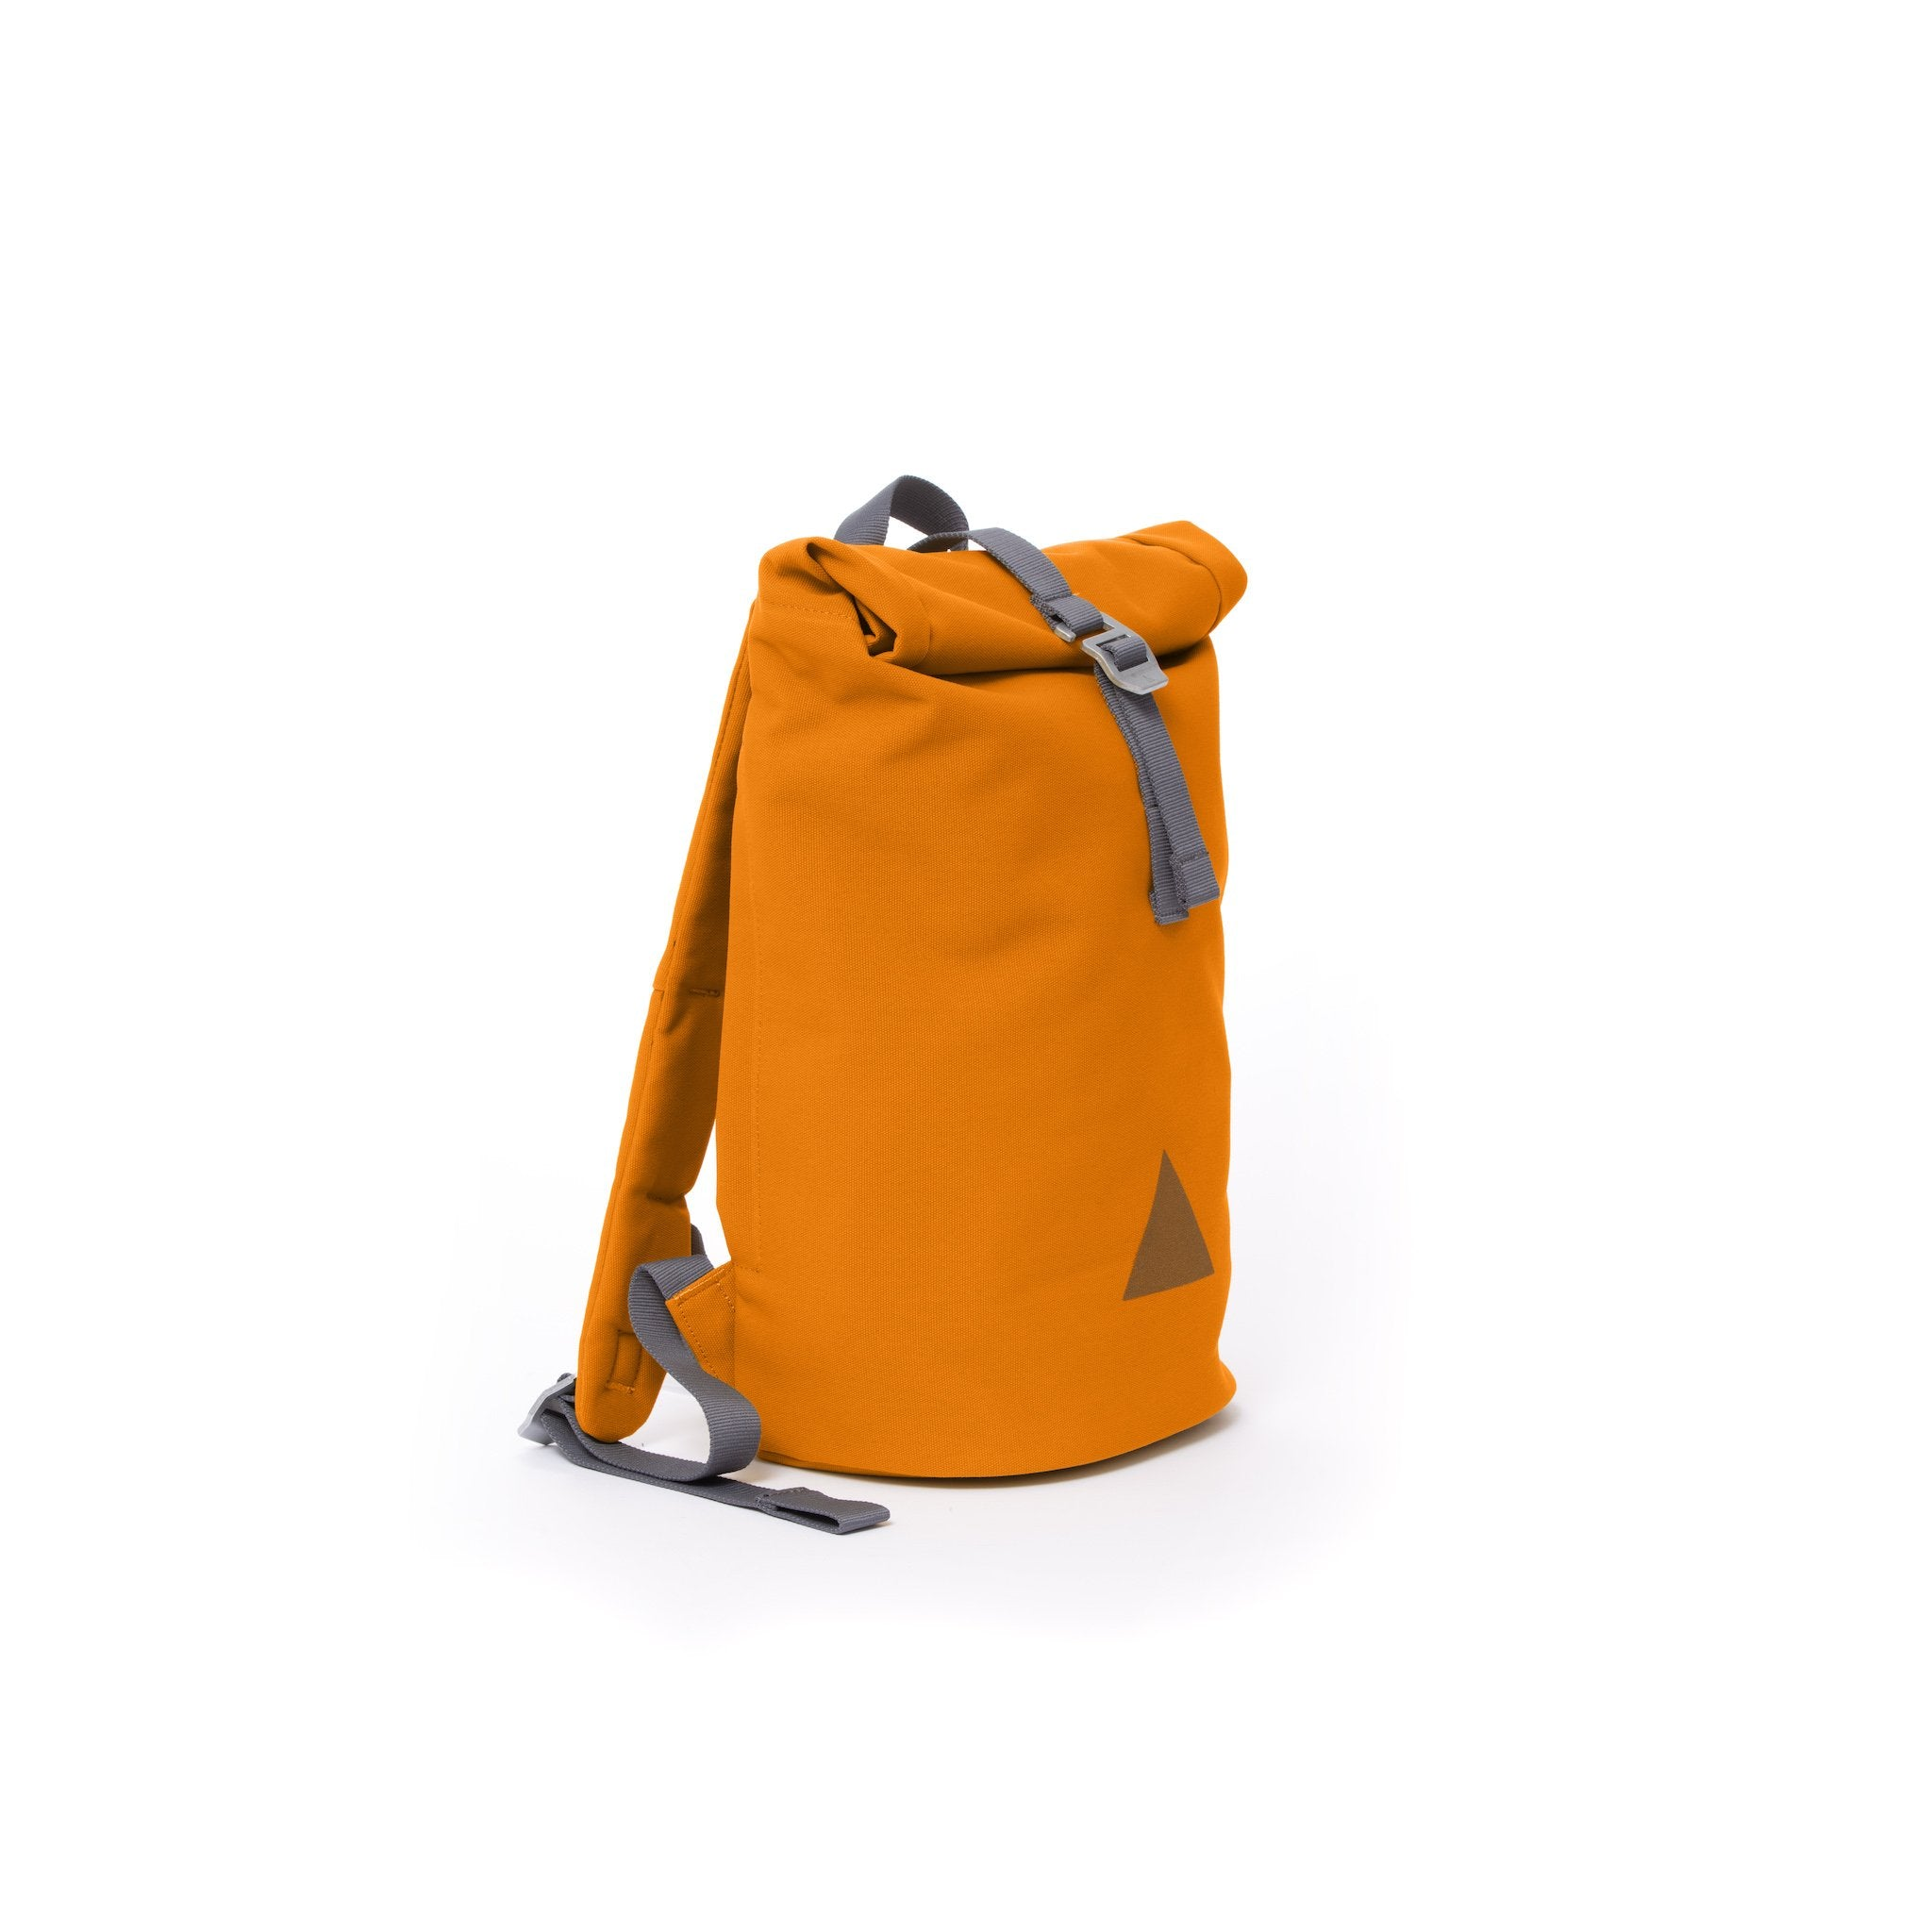 Orange recycled canvas women's rolltop backpack.